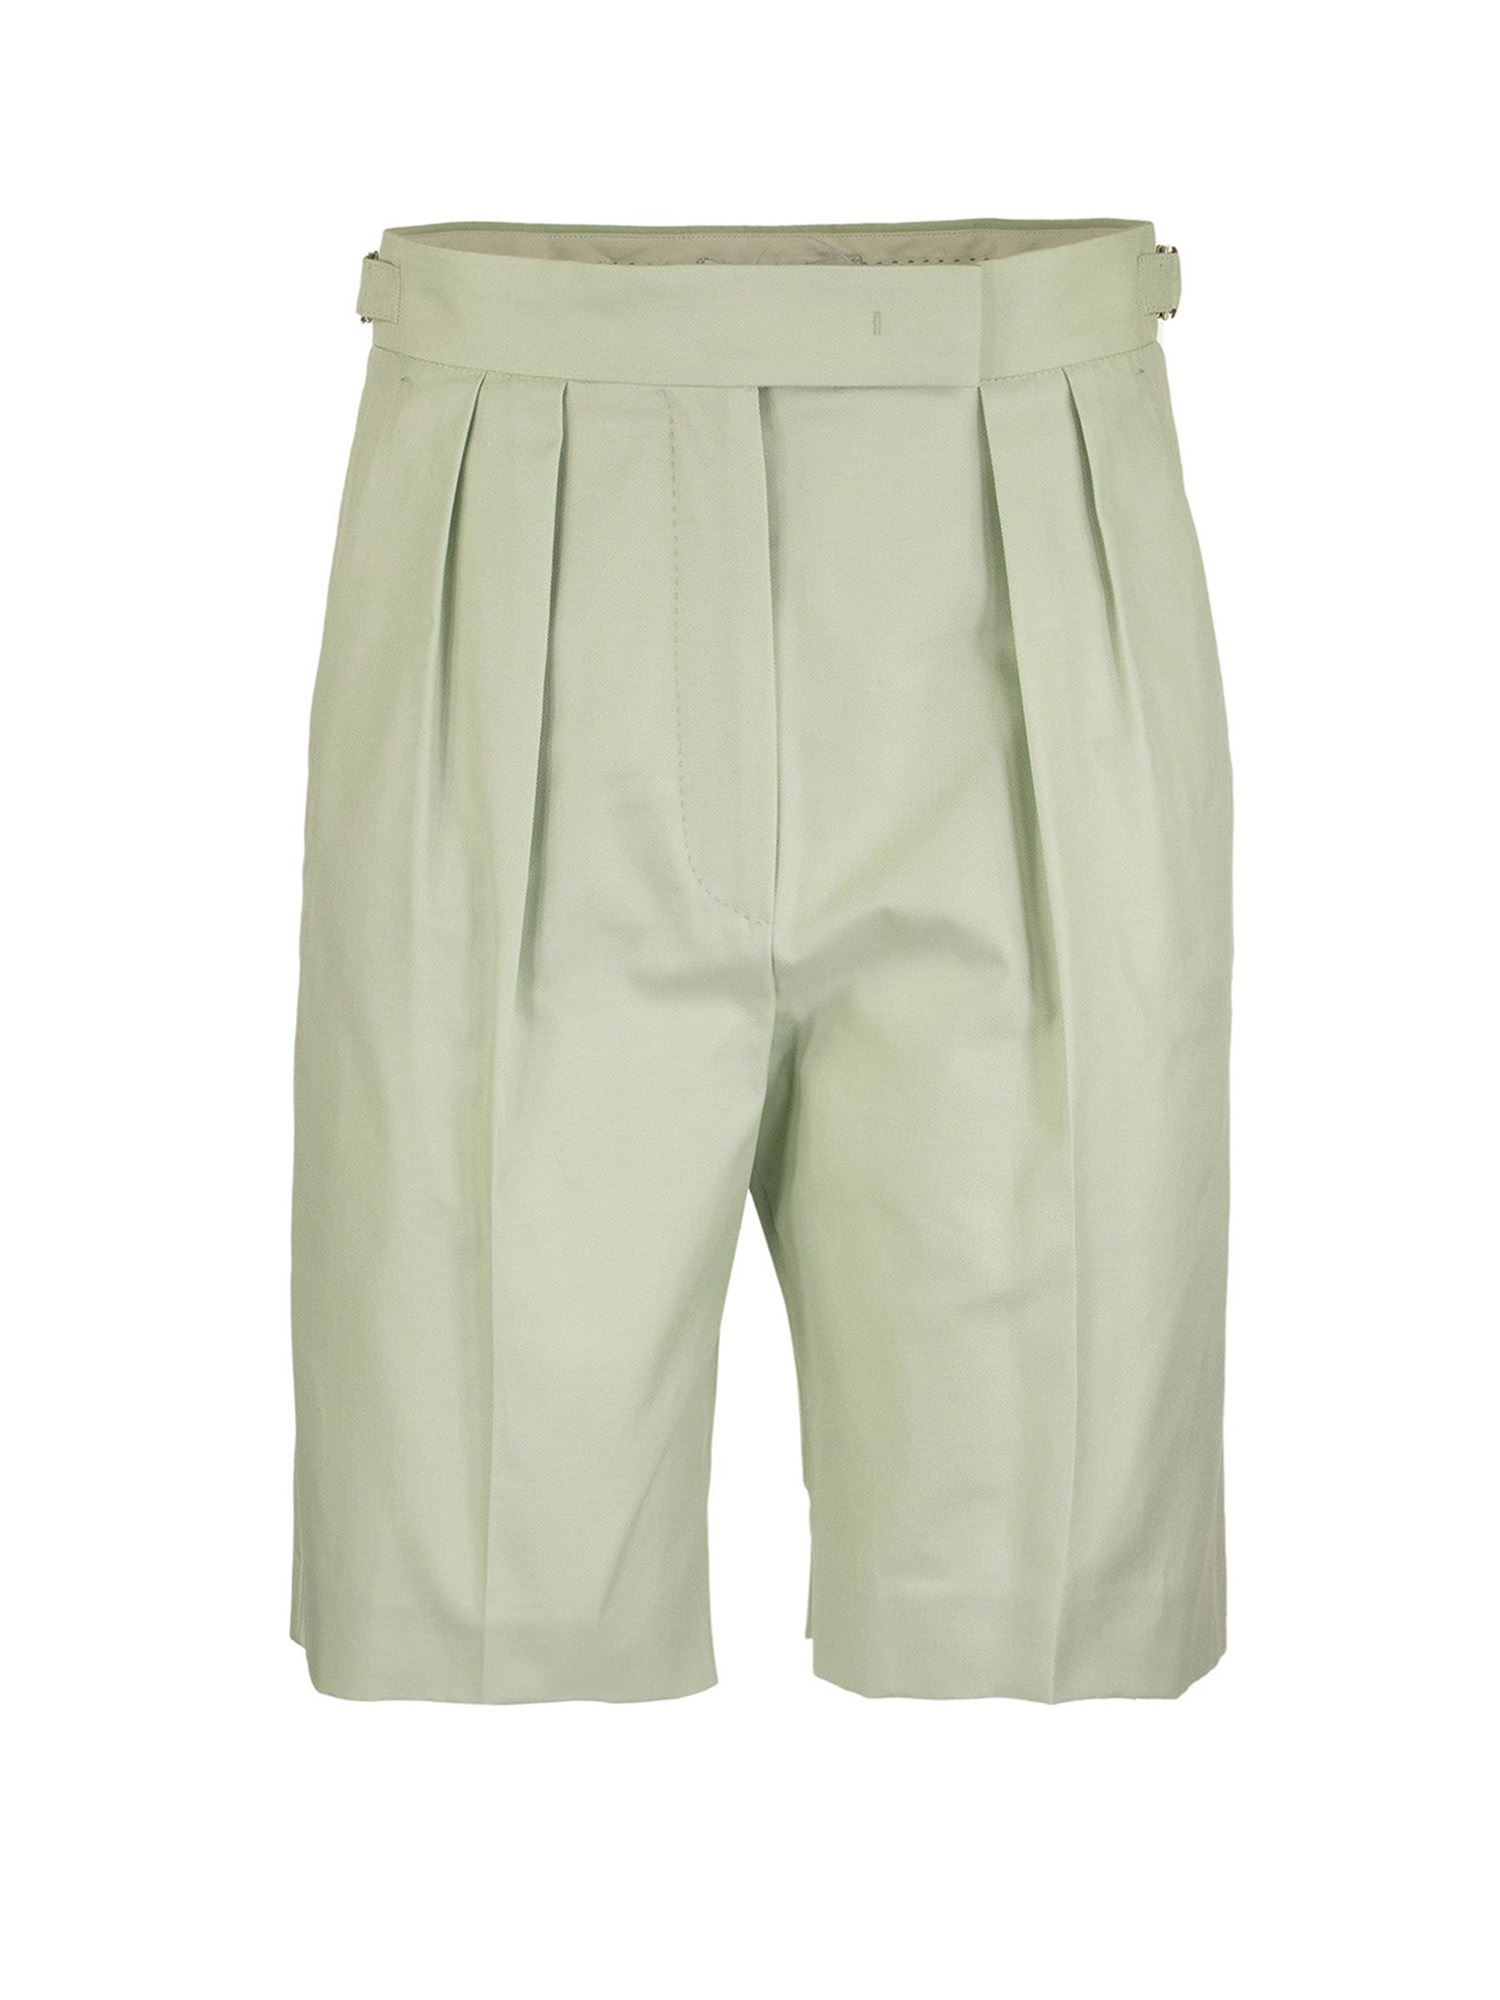 Max Mara Shorts SAFARI BERMUDA SHORTS IN GREEN